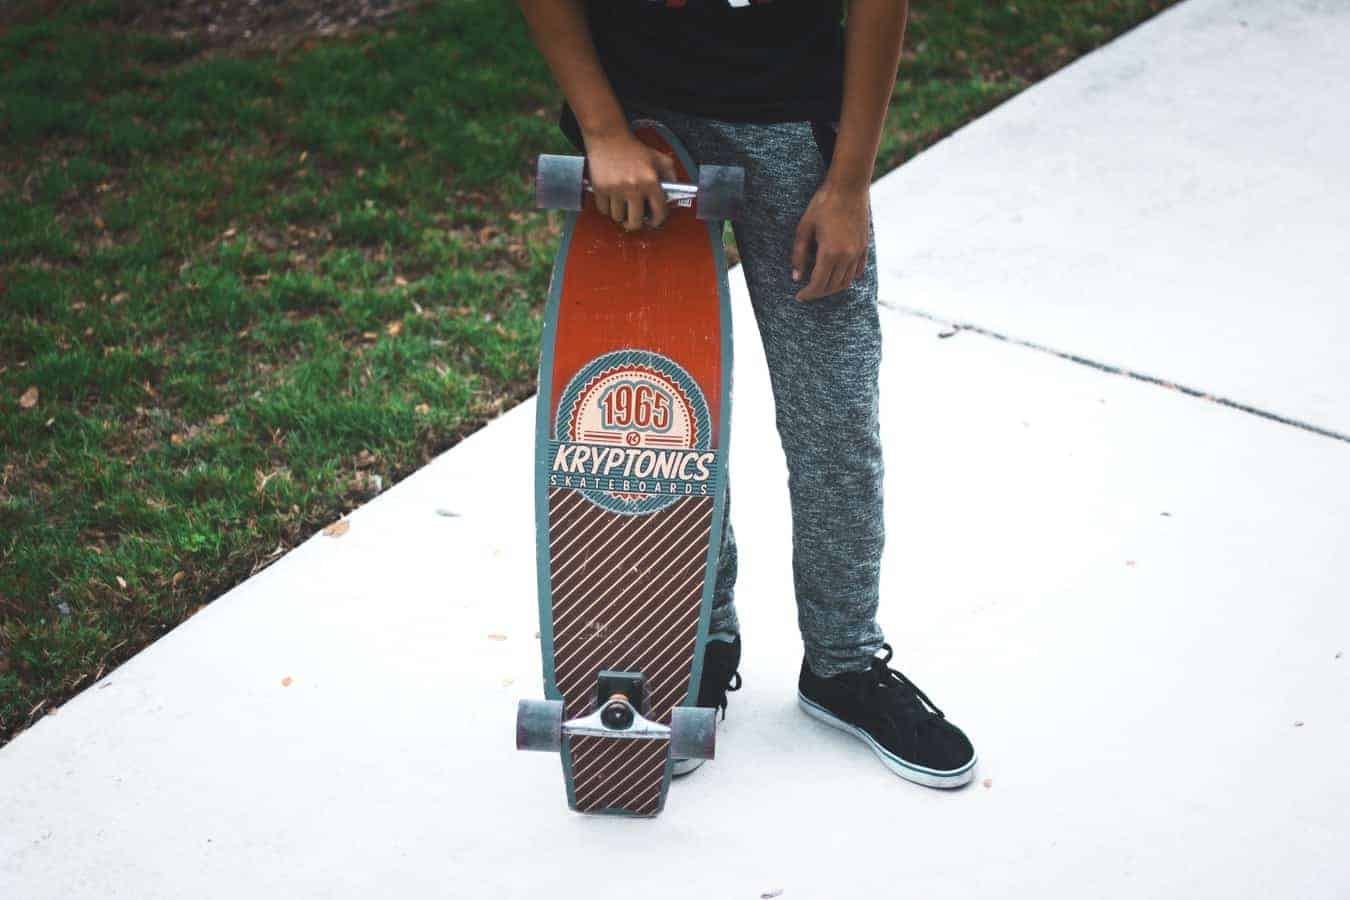 Best Old School Skateboard Decks